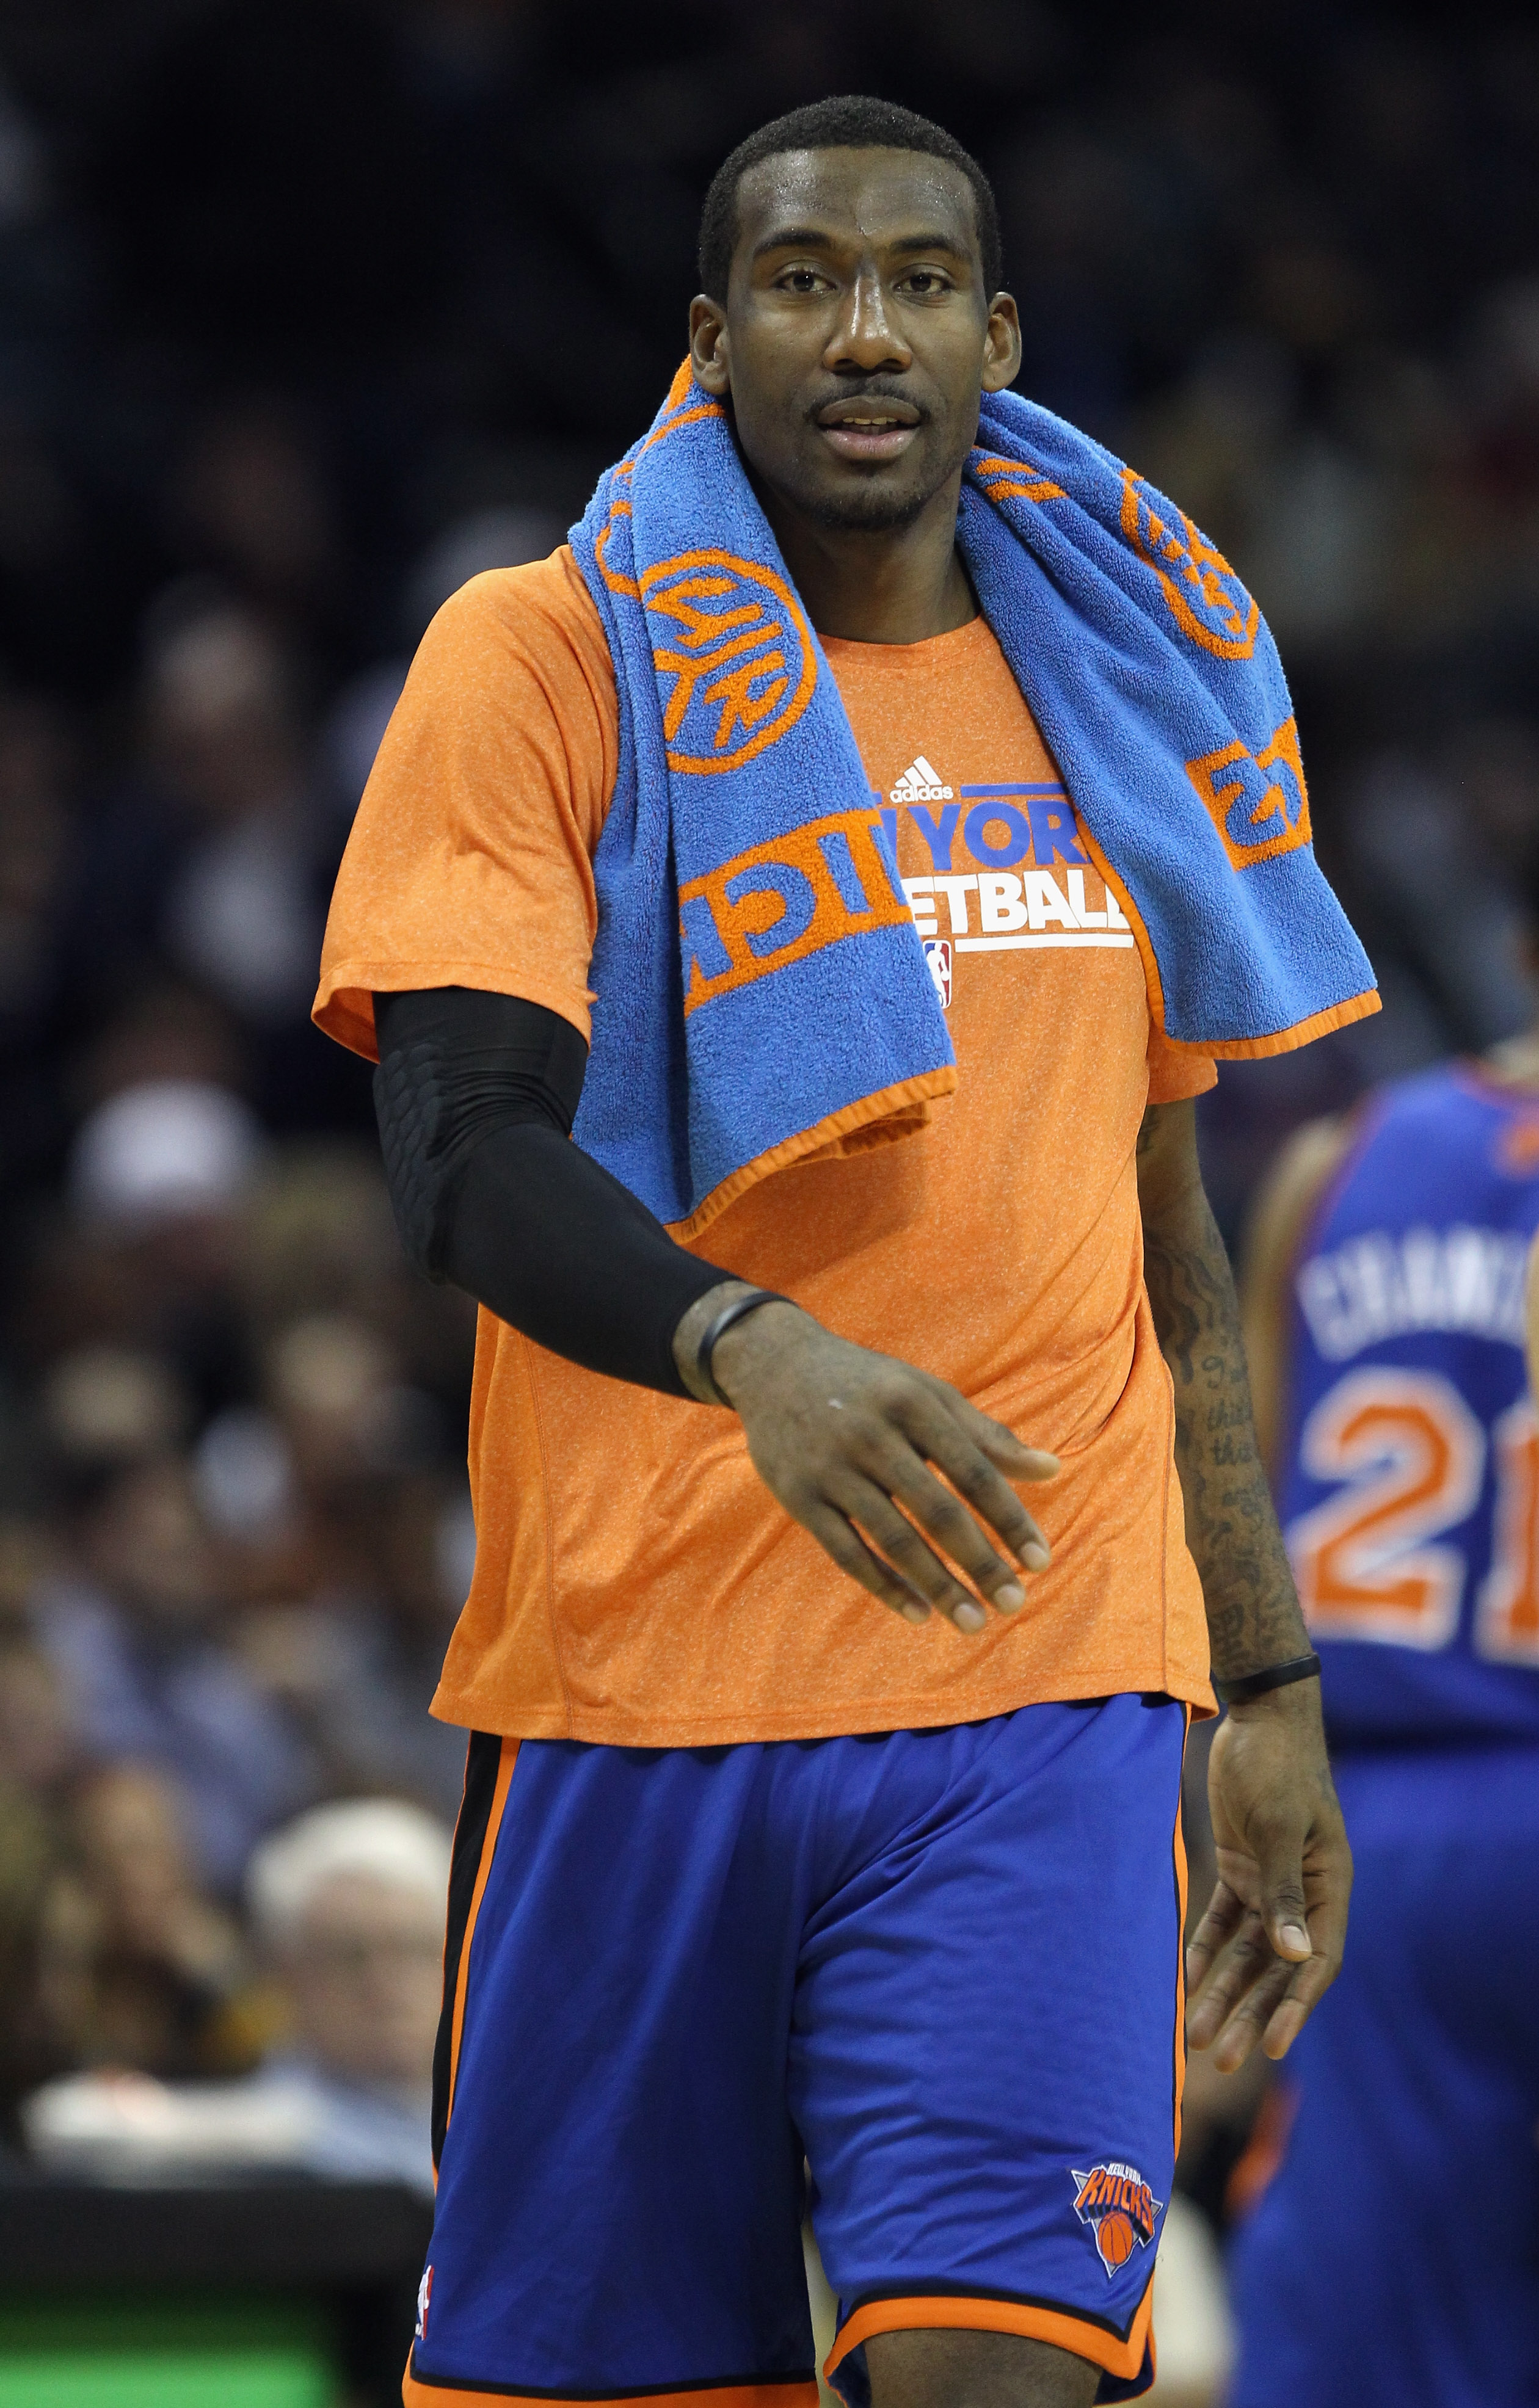 CHARLOTTE, NC - NOVEMBER 24:  Amare Stoudemire #1 of the New York Knicks supports his teammates as he walks on the court during his game against the Charlotte Bobcats at Time Warner Cable Arena on November 24, 2010 in Charlotte, North Carolina.  NOTE TO U